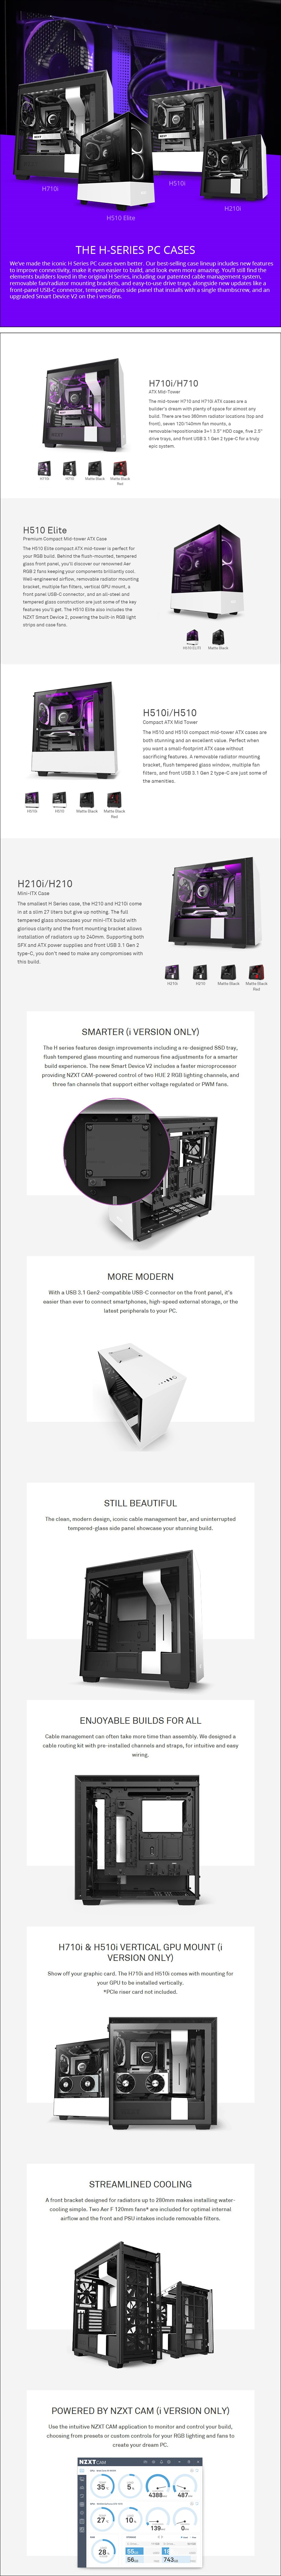 NZXT H710 Smart Tempered Glass Mid-Tower E-ATX Case - Overview 1